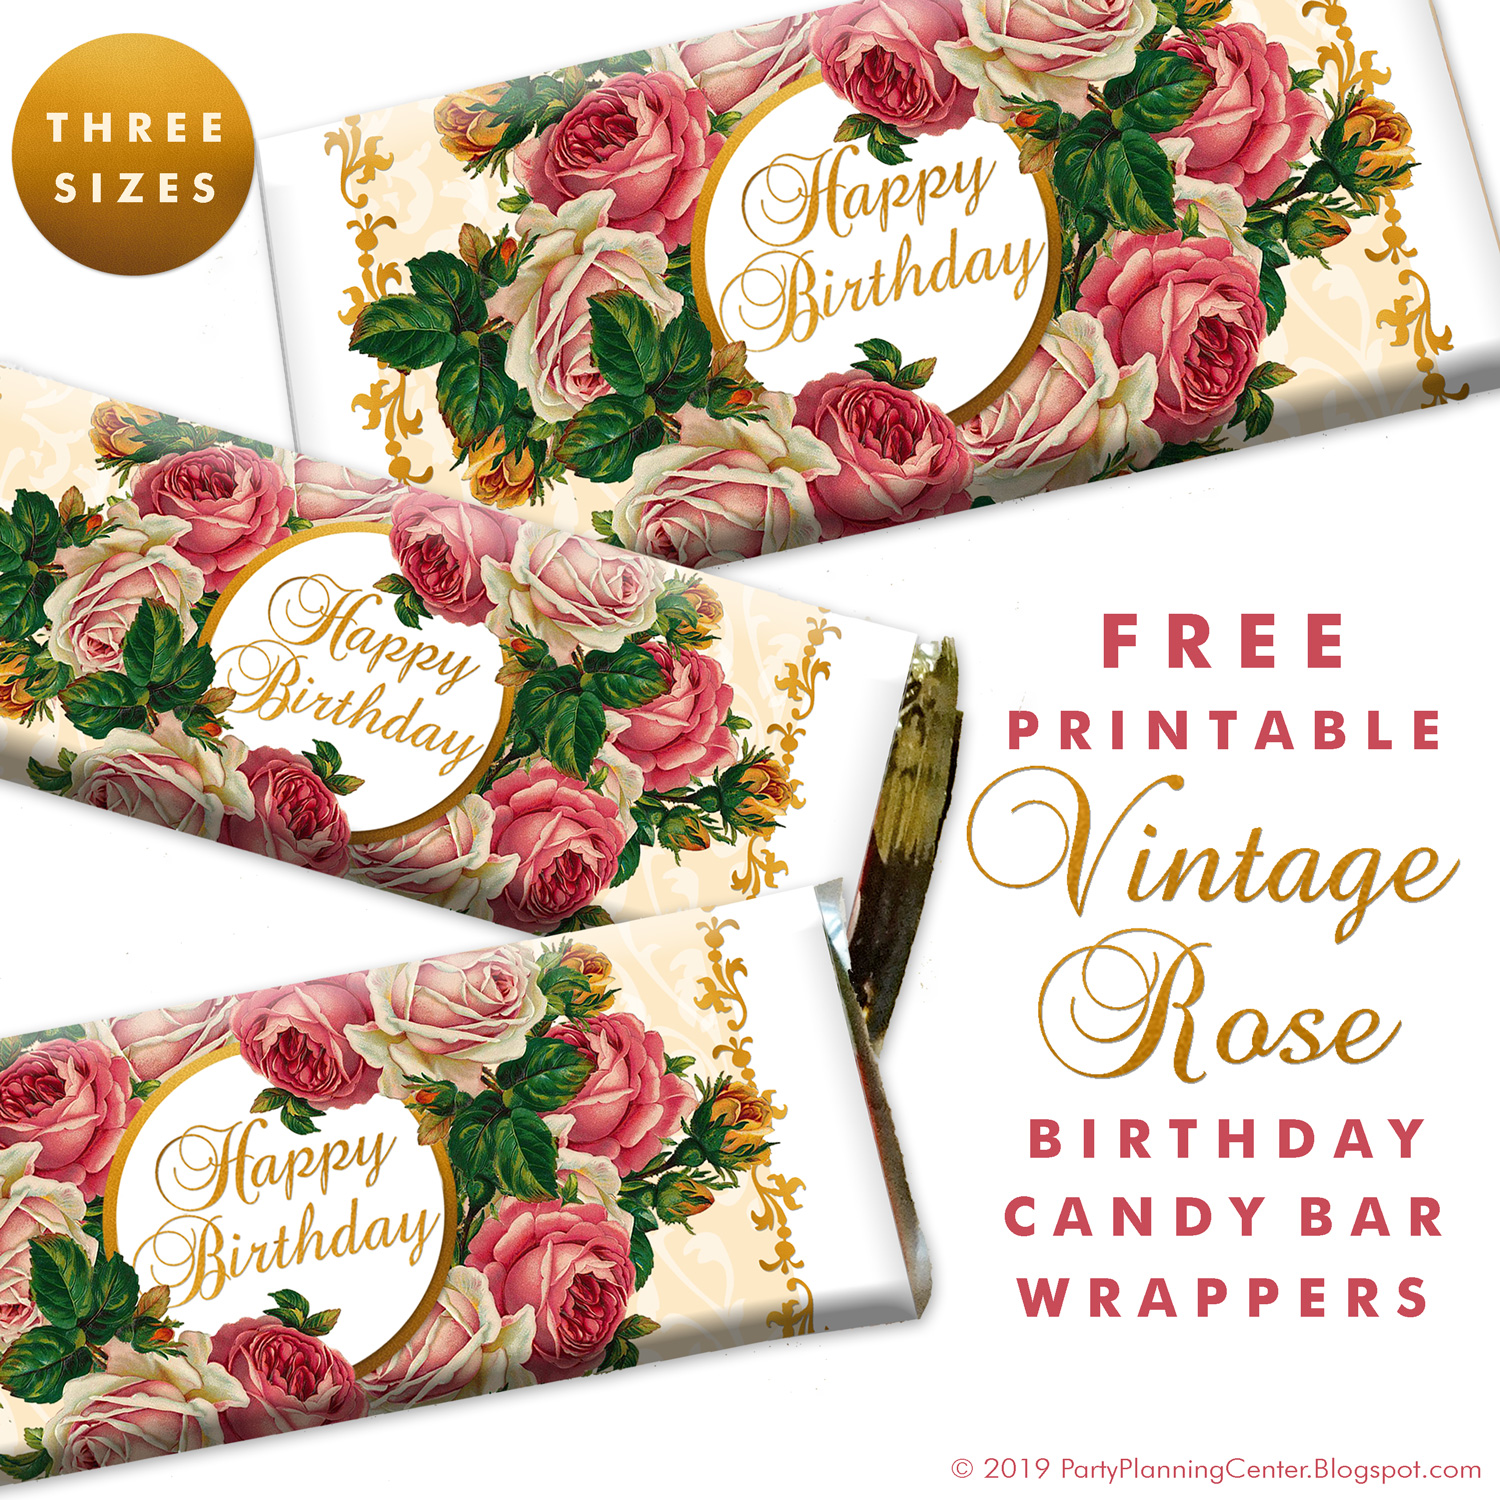 It's just an image of Free Printable Birthday Candy Bar Wrappers with regard to diy